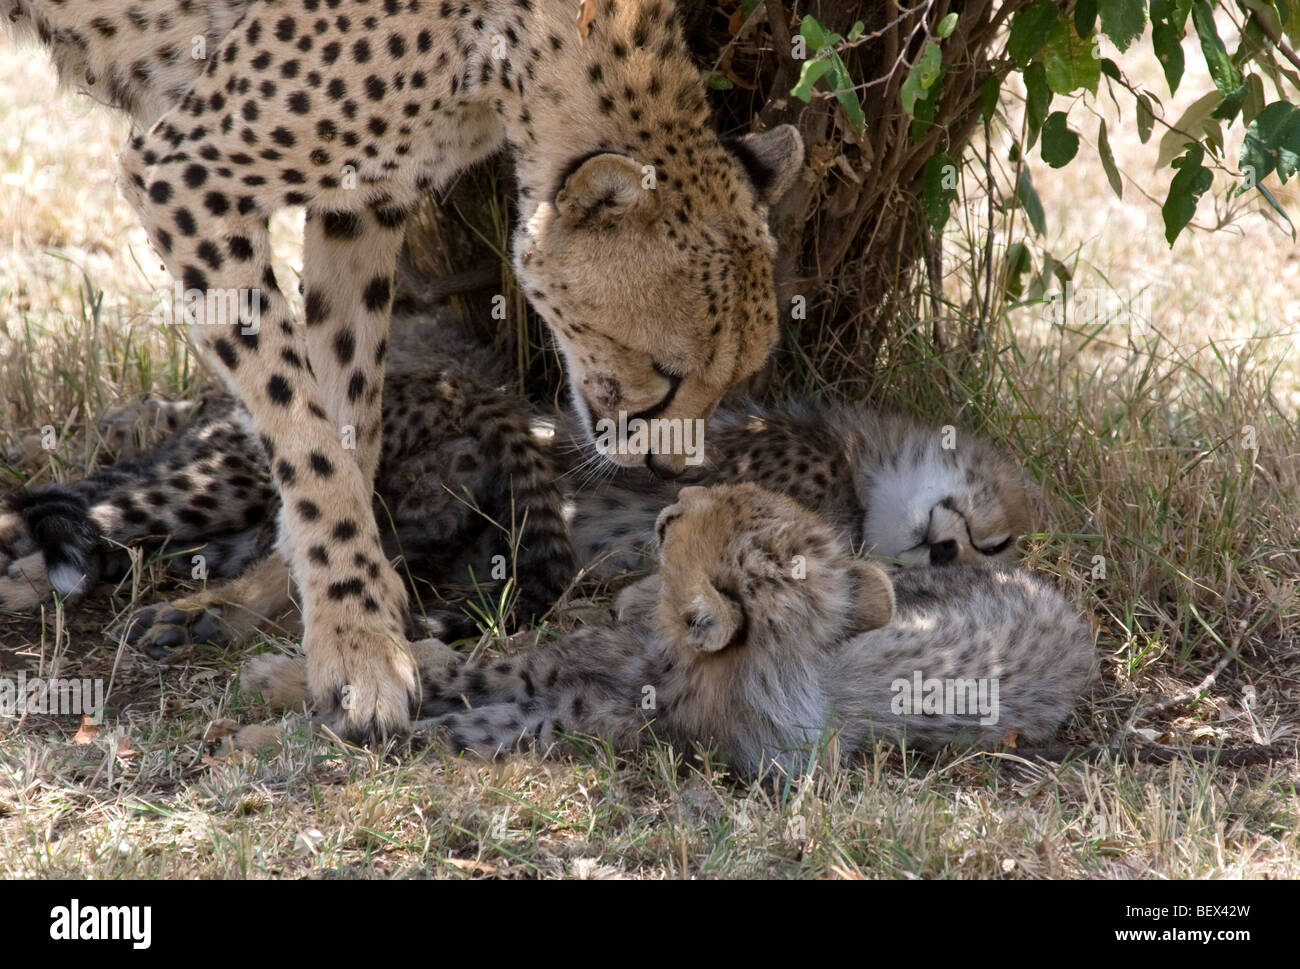 Cheetah mother greets her cubs in the Masai Mara - Stock Image